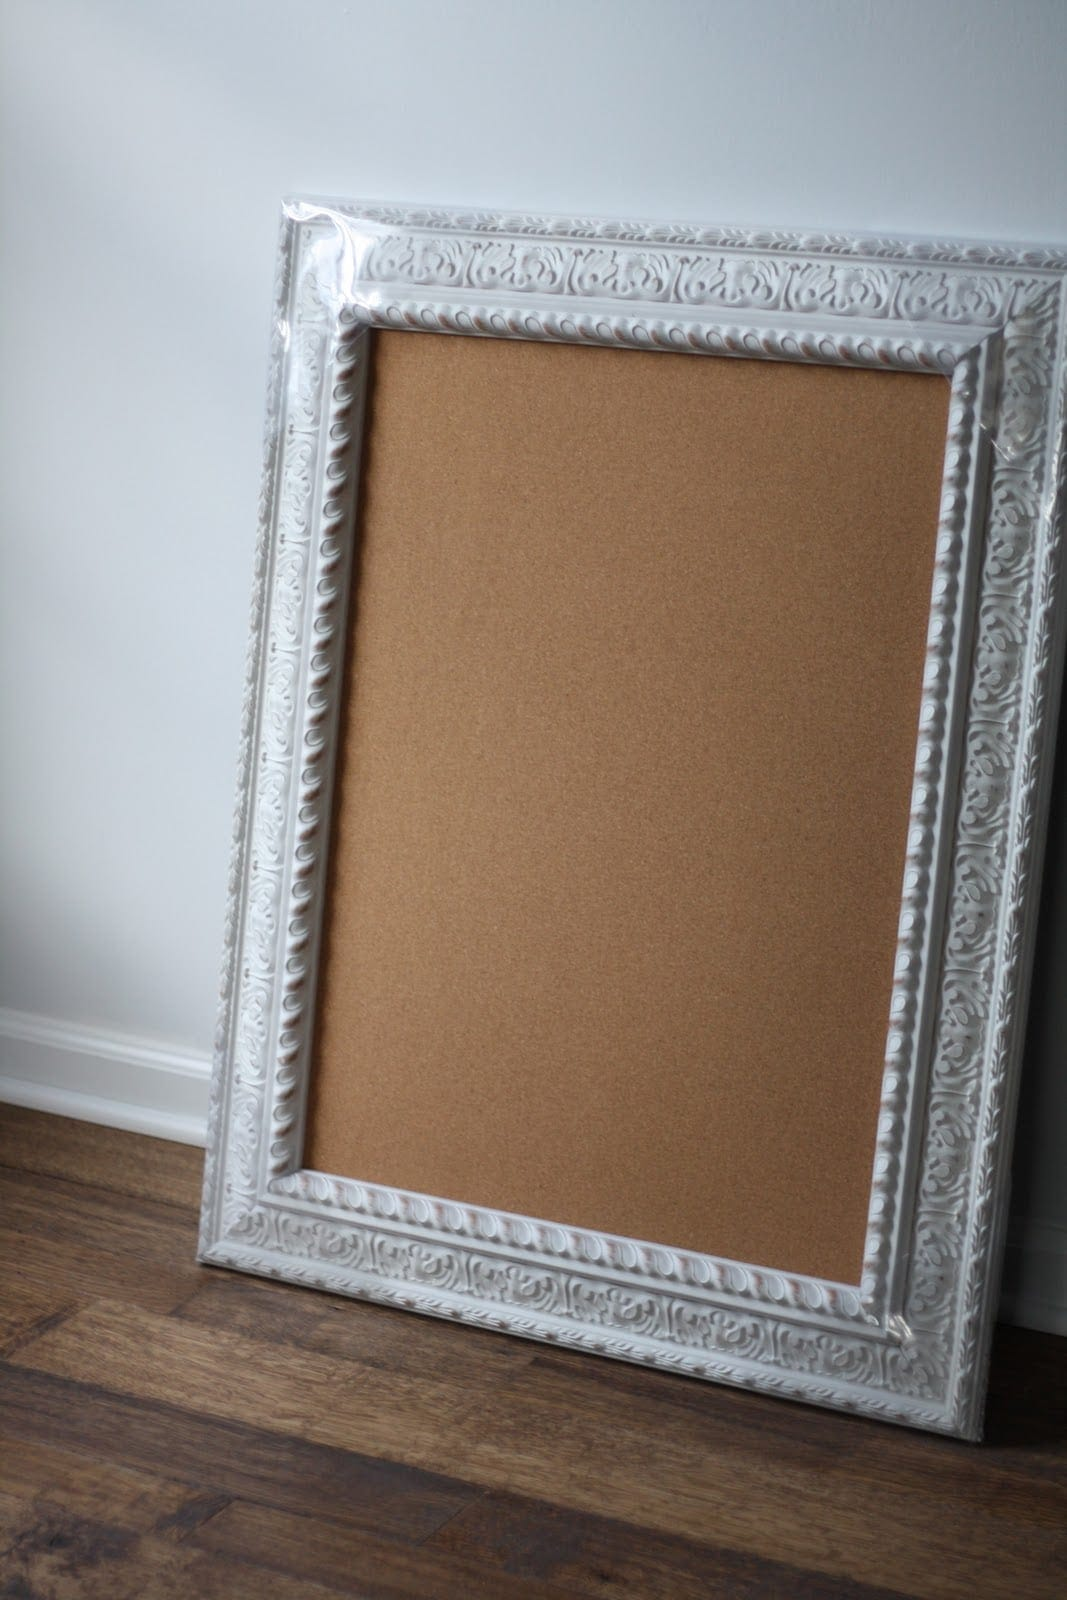 large cork board with white frame